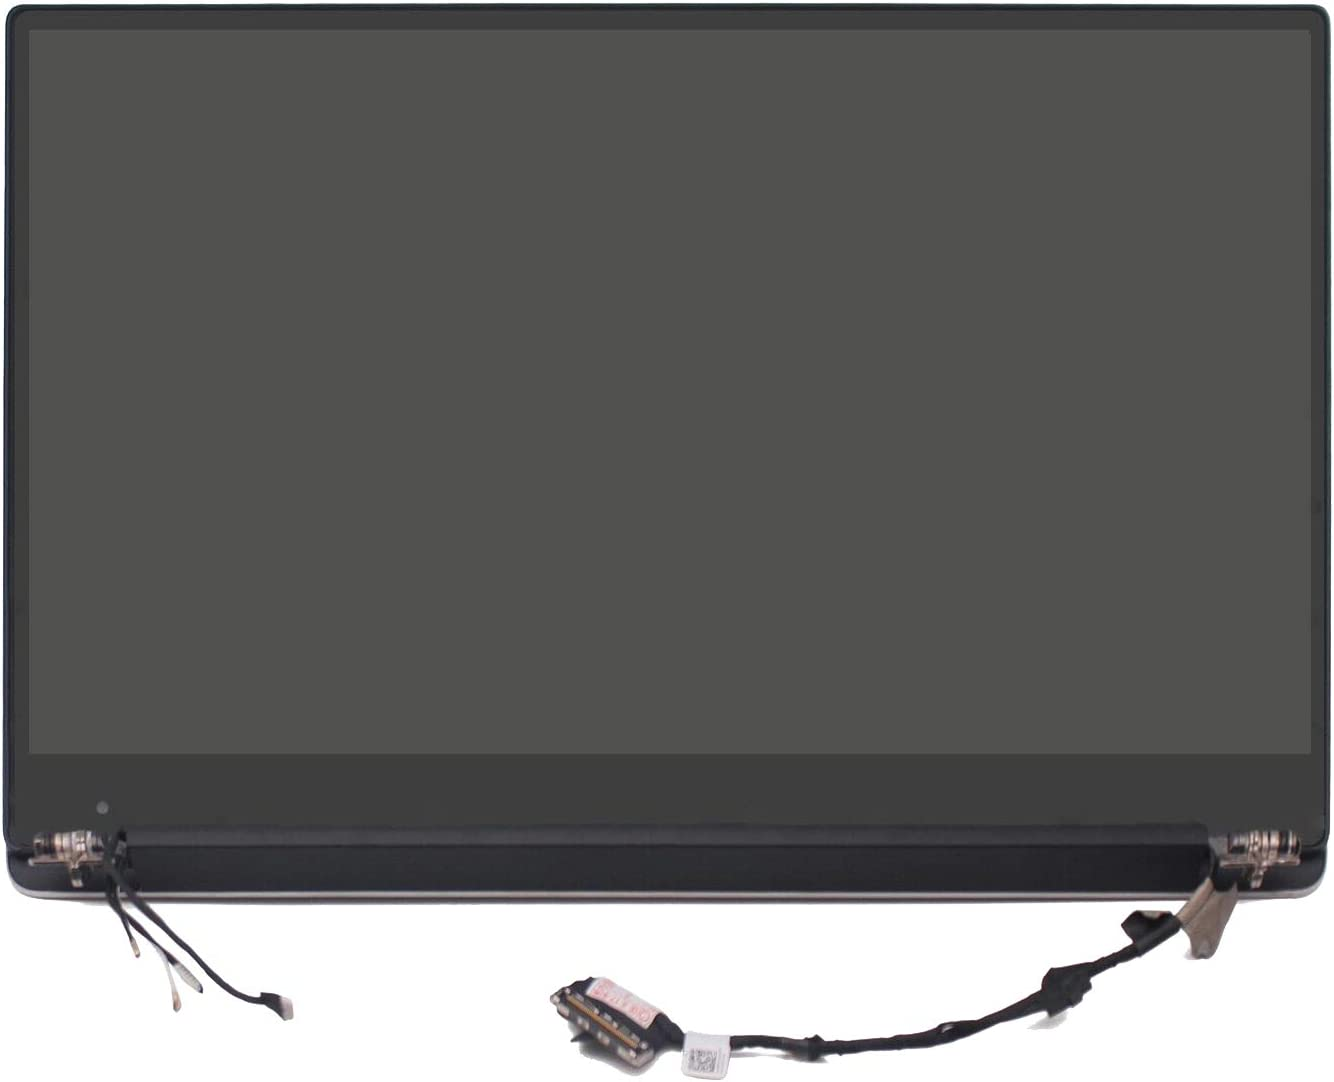 "JCD 13.3"" QHD 3200x1800 LCD Touch Screen Panel Display Assembly for Dell XPS 13 9360 P54G"